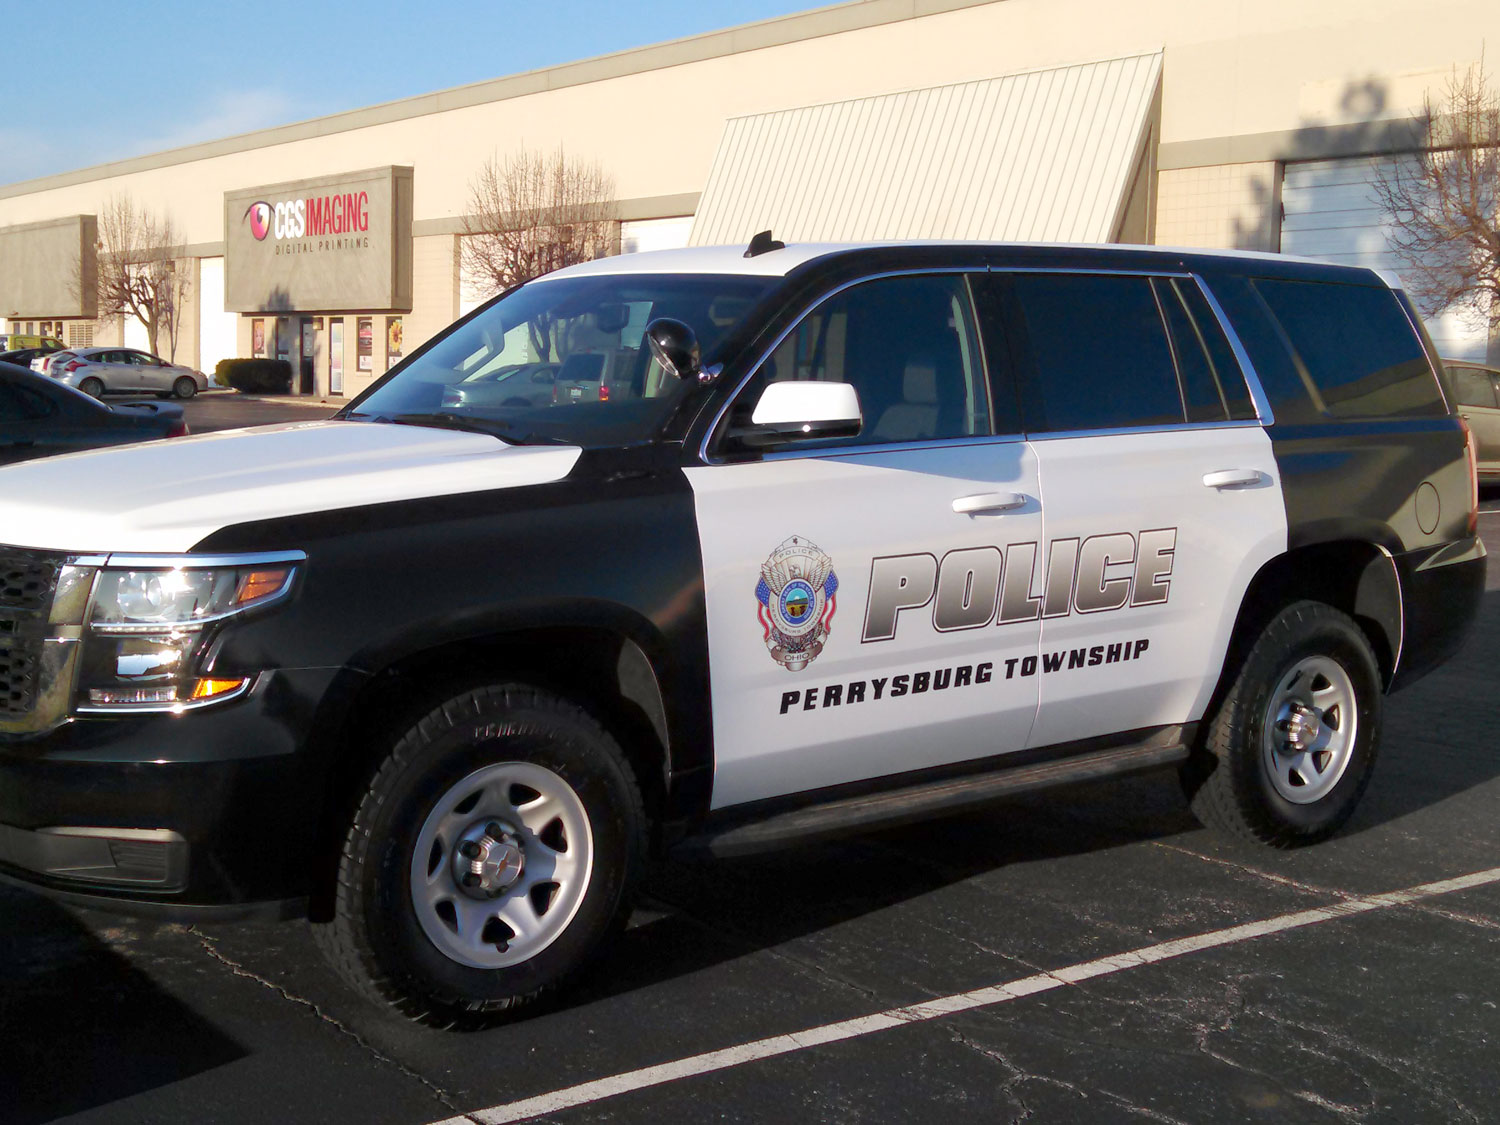 Perrysburg Township Police Vehicle Graphics